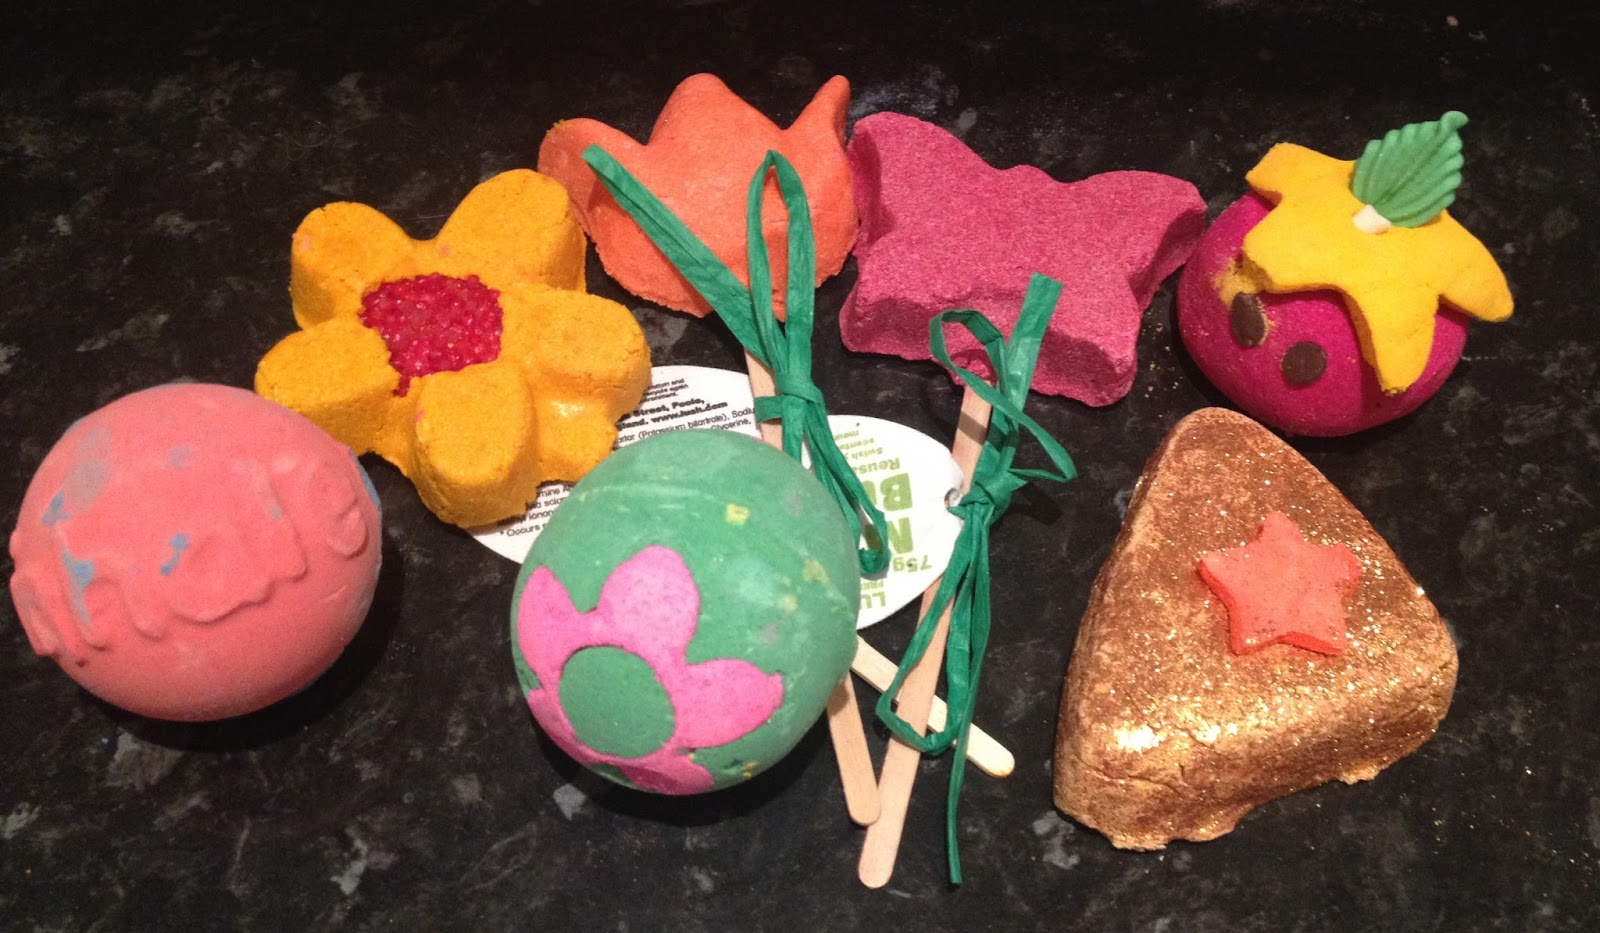 Lush's Mother's Day Range 2014.